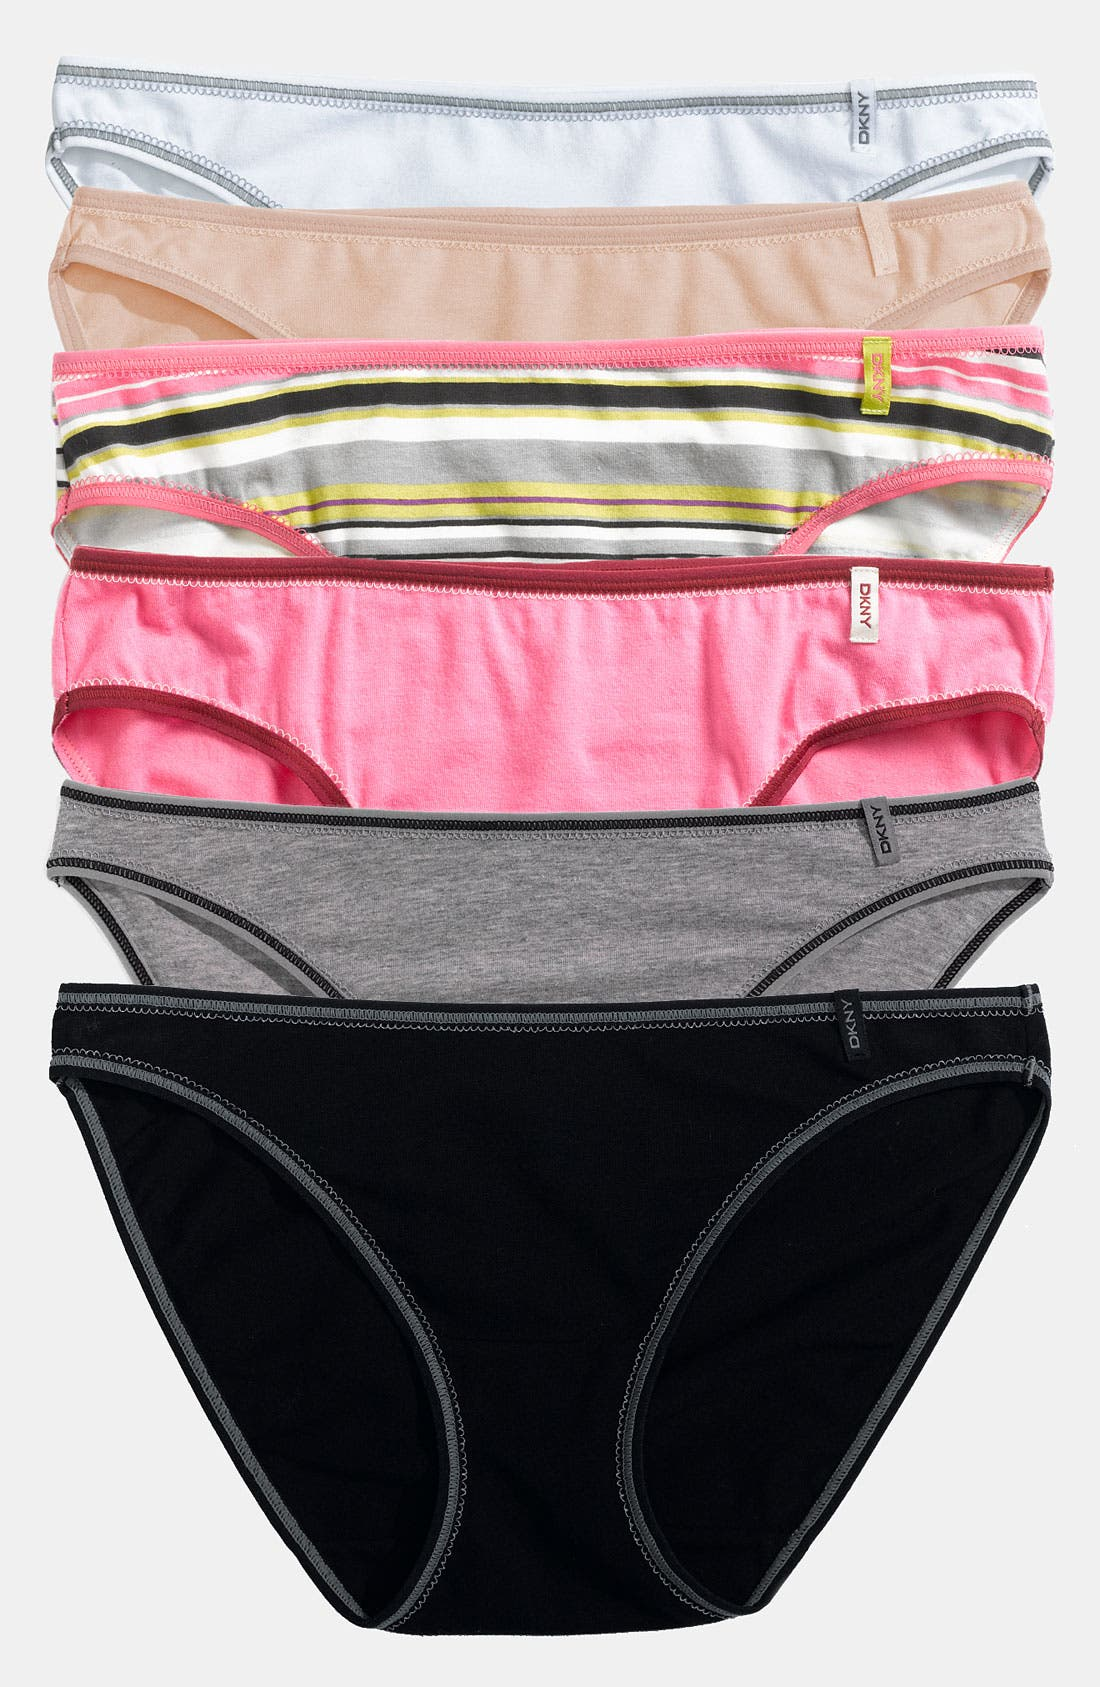 Alternate Image 1 Selected - DKNY 'Comfort Classic' Bikini (3 for $27)